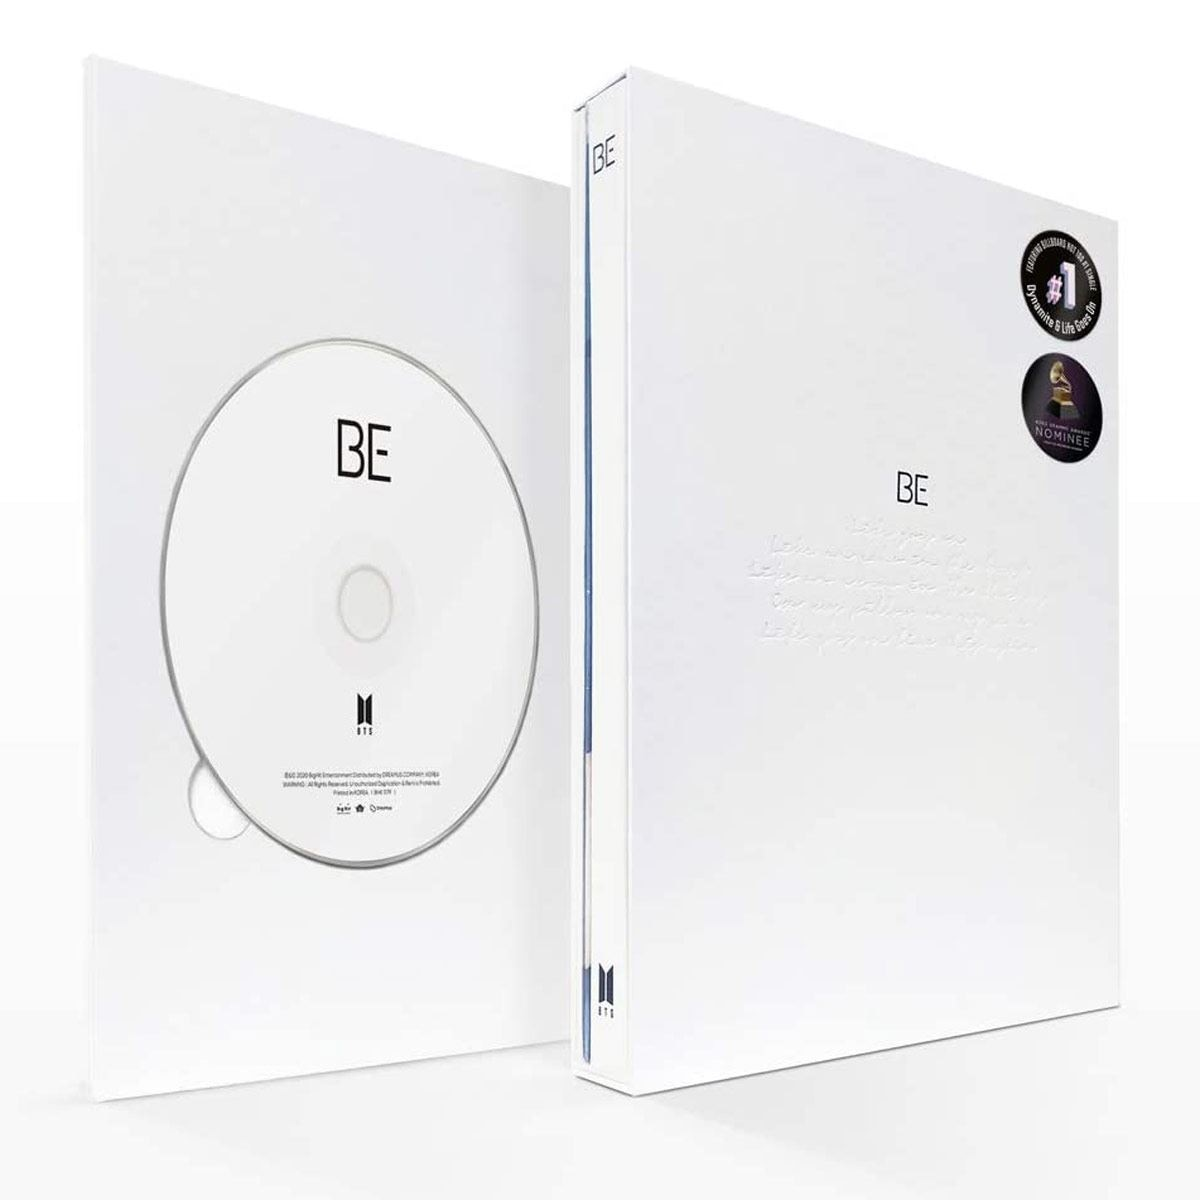 CD BTS - Be Essential Edition